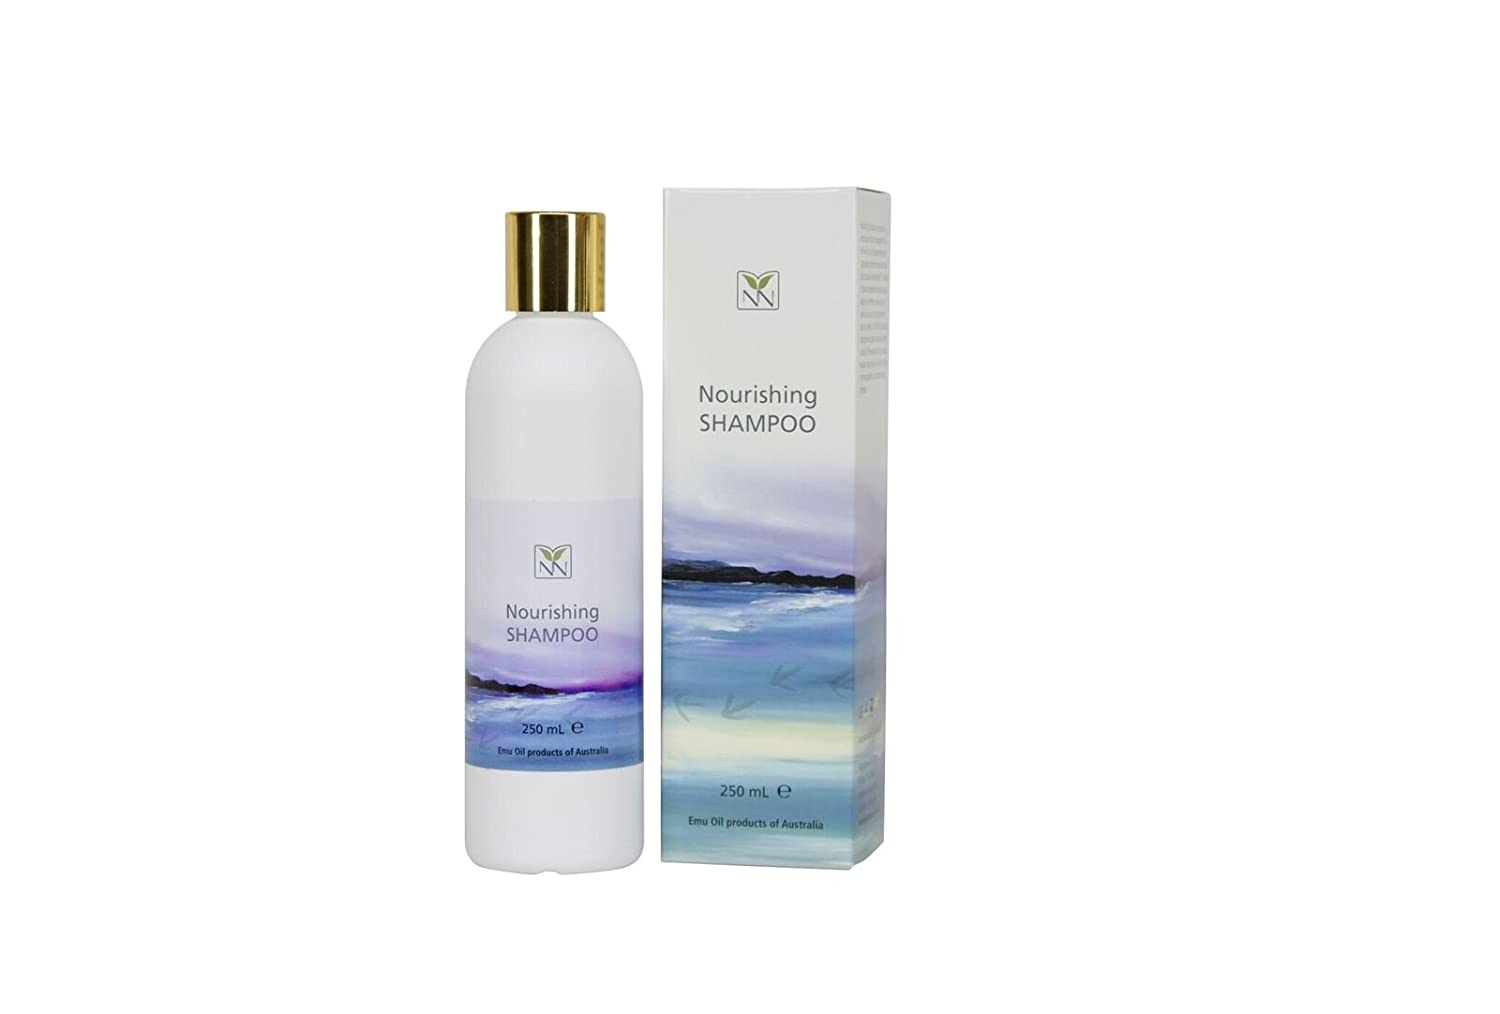 Luxury Natural Deep-Nourishing Shampoo with Australian Emu, Peppermint Oil, Ylang Ylang, and Rosemary - 8.5oz - The Ultimate Deep-Nourishing Shampoo to Rejuvenate, Repair, Revitalize, and Volumize